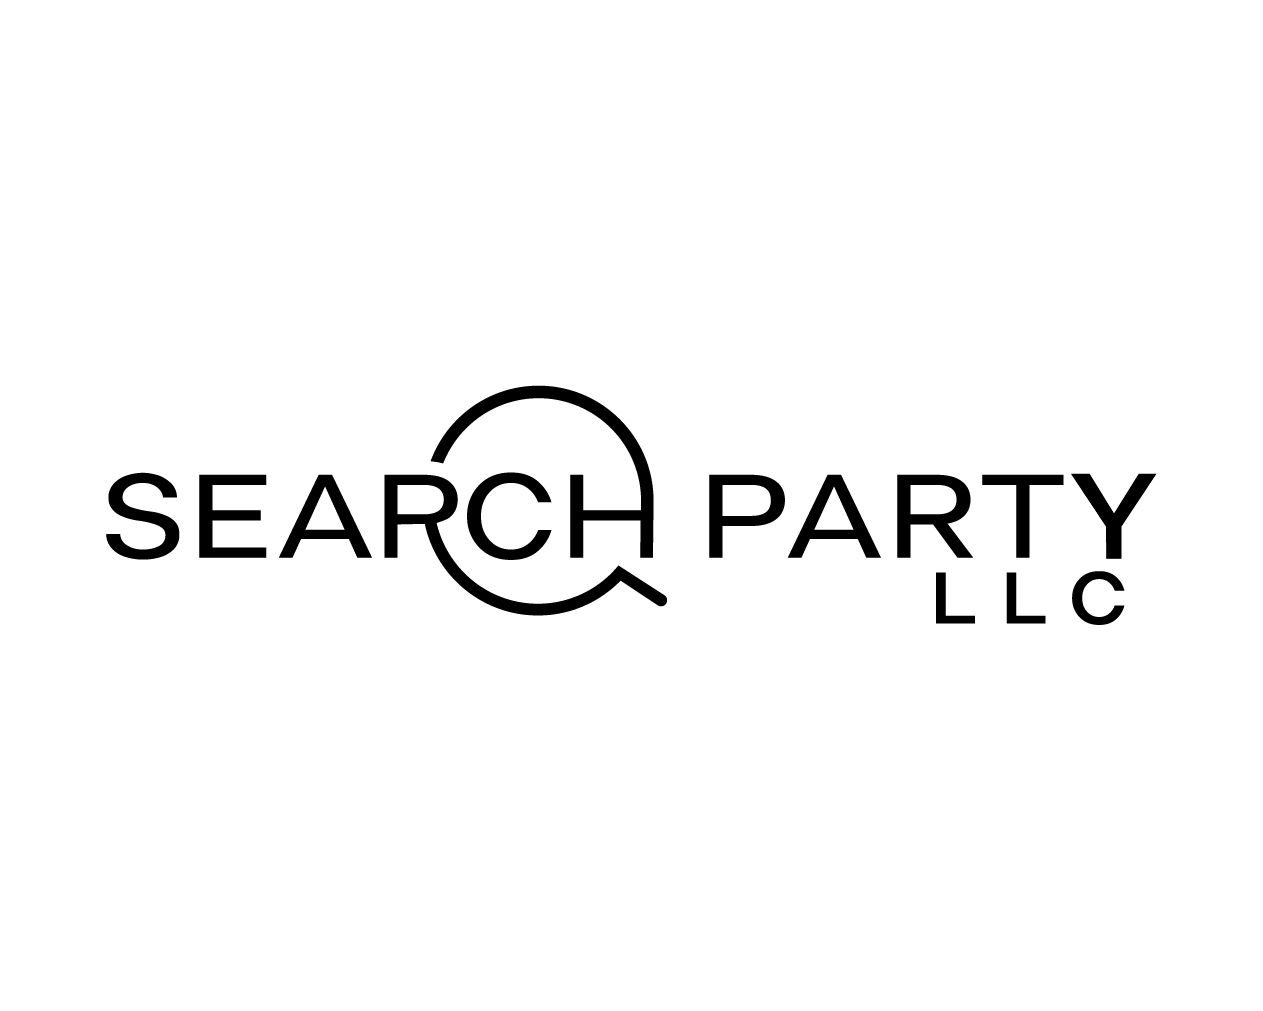 Search Party LLC - Logo- (Final Files)-01 -(Black Logo) (1).png